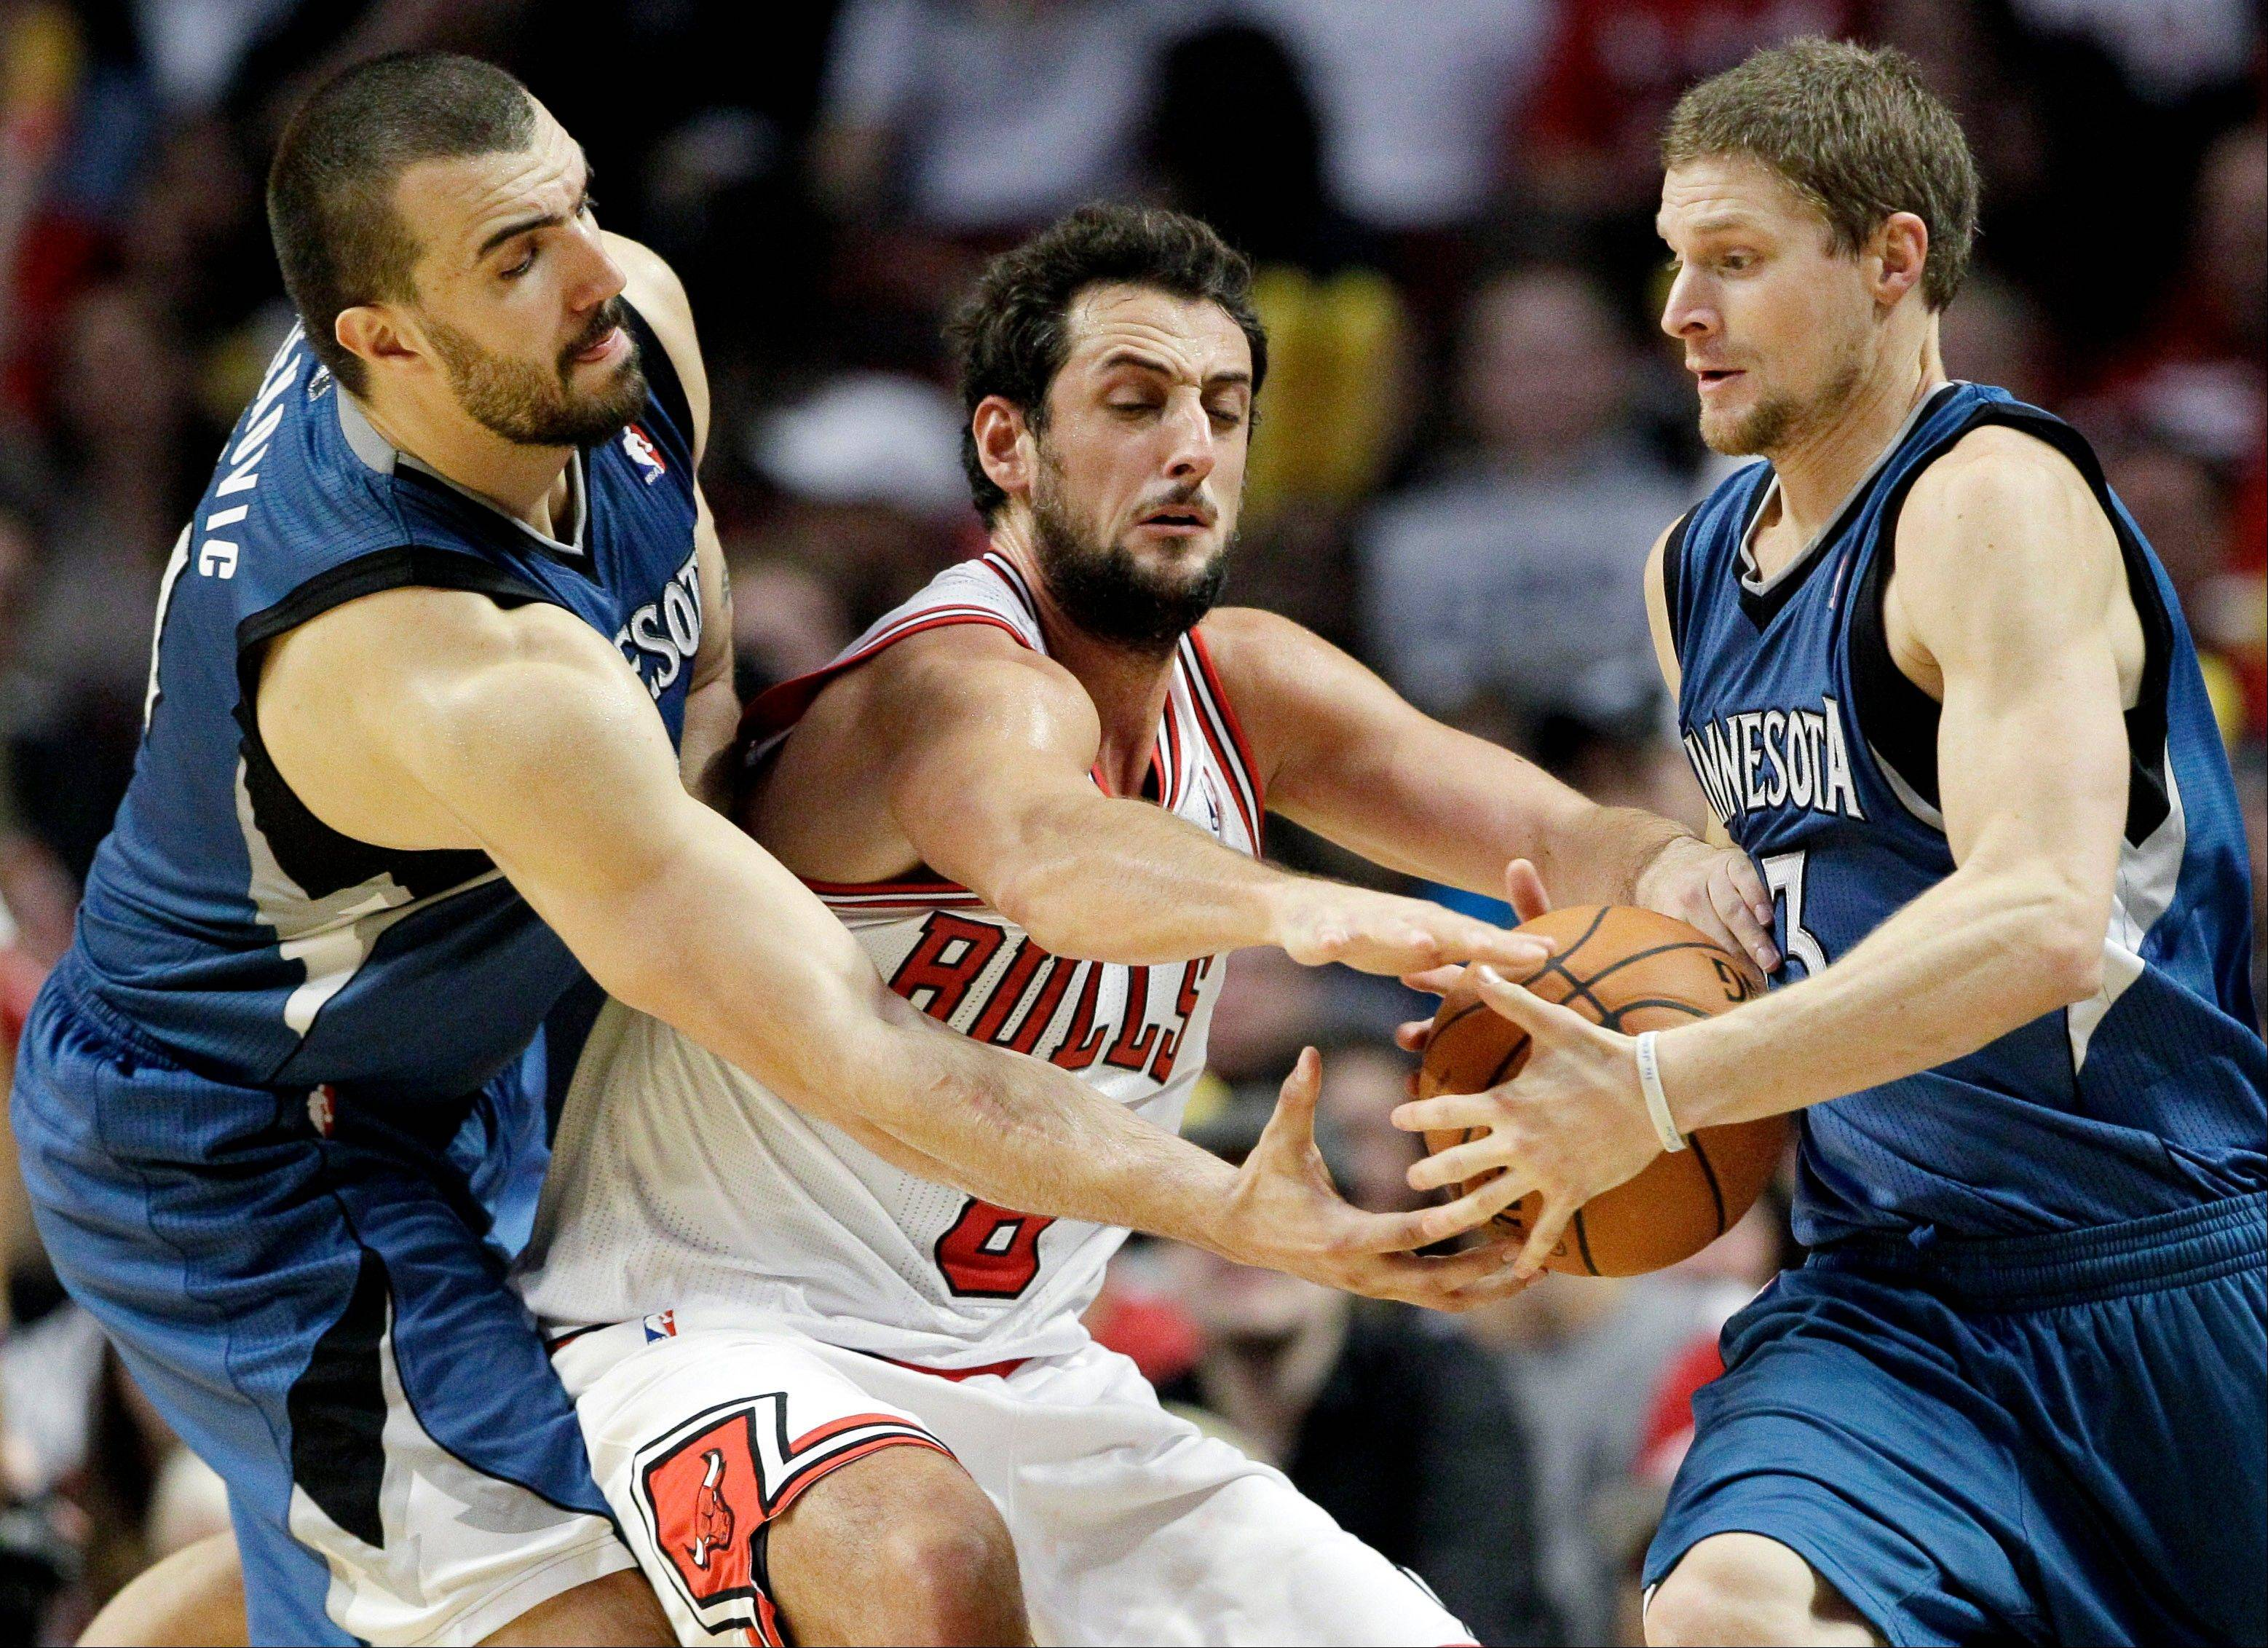 Minnesota's Nikola Pekovic, left, passes the ball to guard Luke Ridnour as the Bulls' Marco Belinelli reaches in during the second half Saturday night.